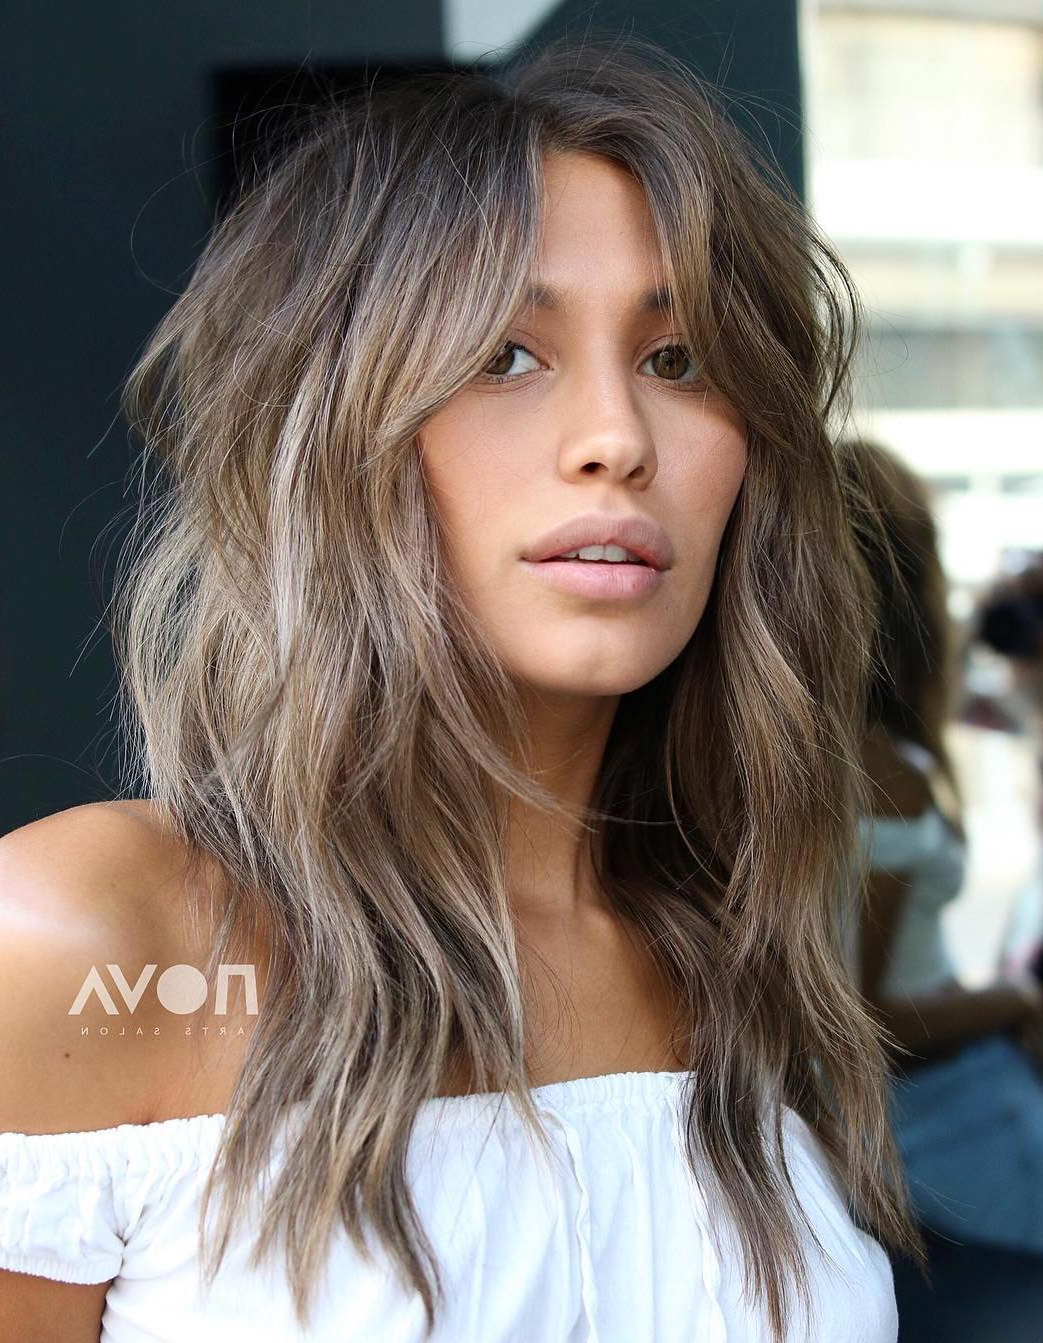 40 Modern Shag Haircuts For Women To Make A Splash Intended For Best And Newest Vibrant Feathered Look Medium Shag Hairstyles (View 5 of 20)